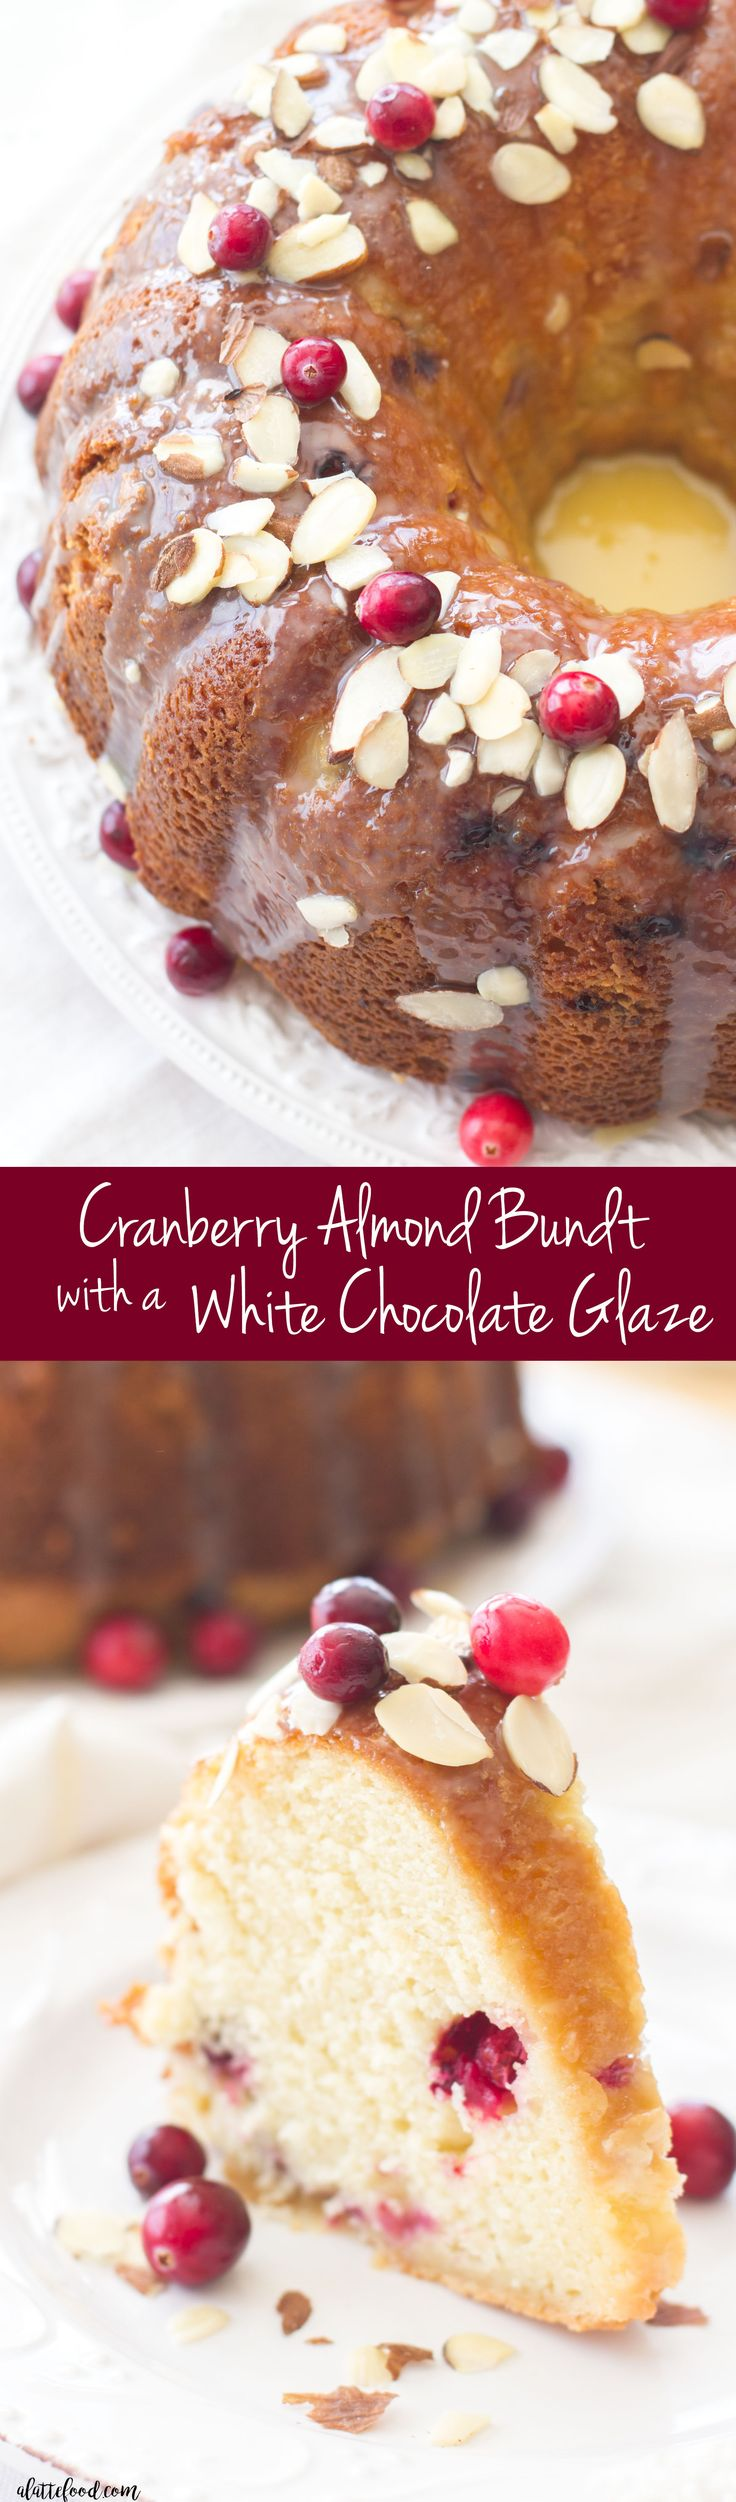 This easy cranberry almond bundt cake is made with fresh cranberries and topped with a white chocolate glaze! The sweet almond flavor pairs perfectly with the tart cranberry flavor. A fantastic Christmas dessert!